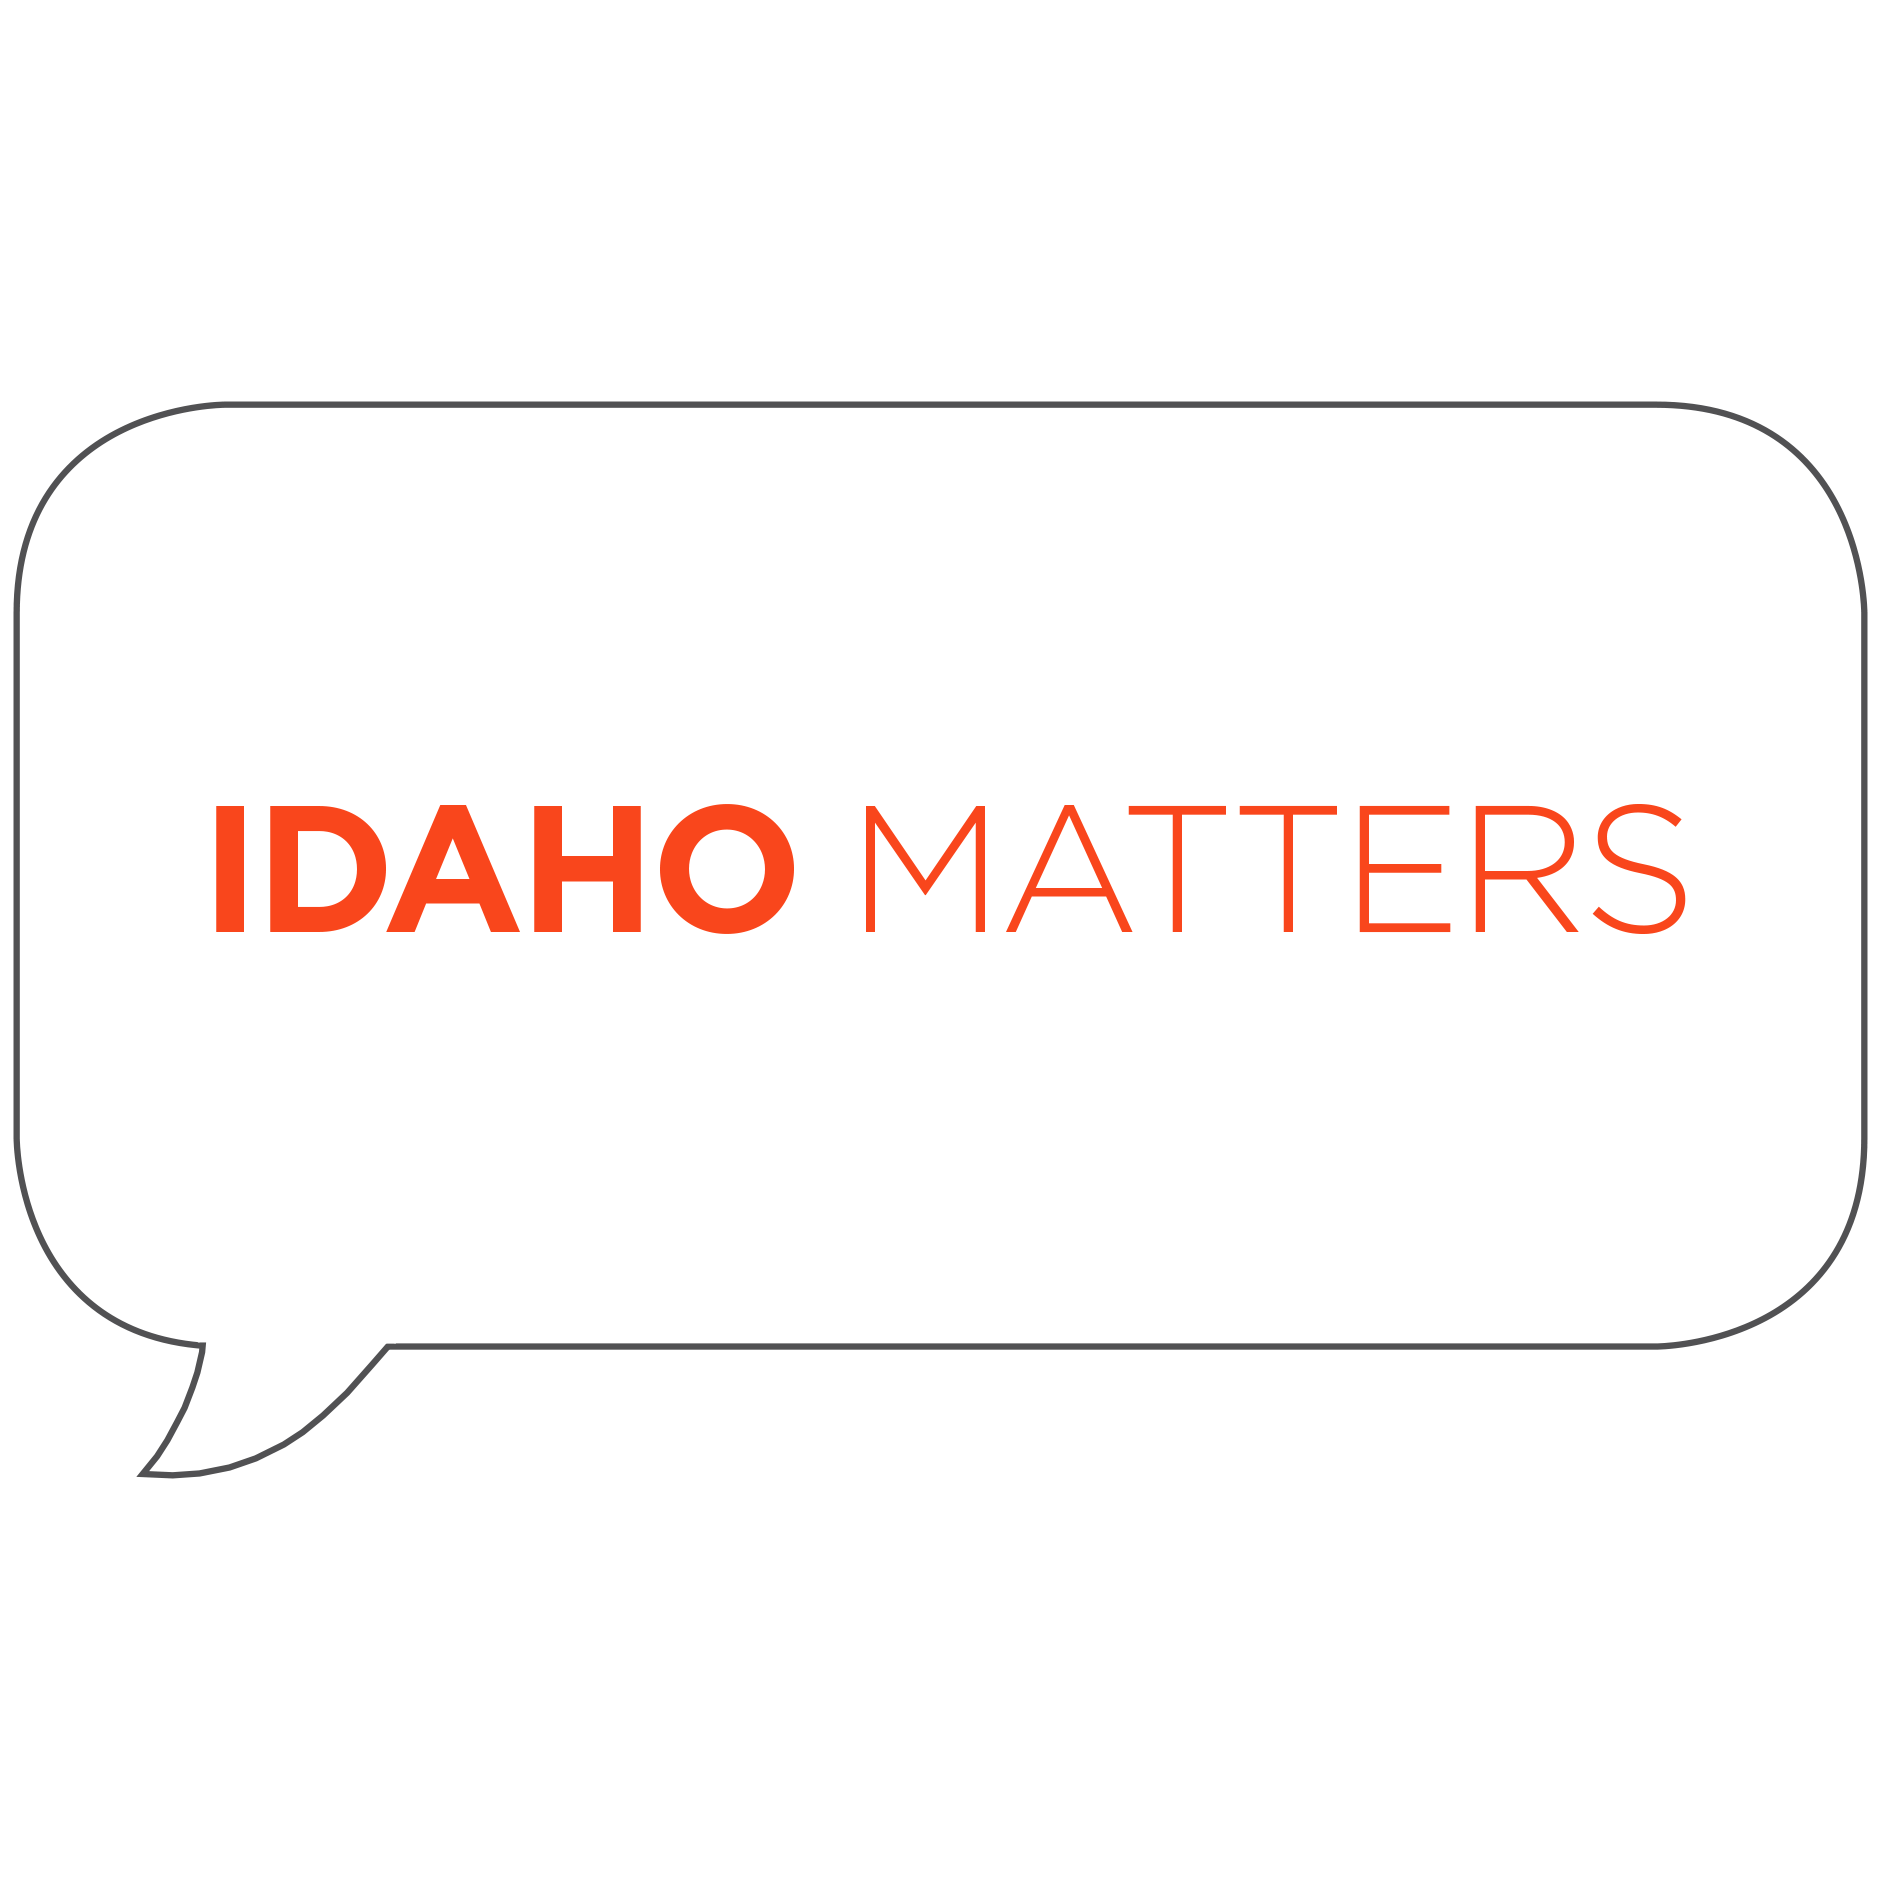 Idaho Matters - Idaho Mattersis the place on-air and online where folks with different views can talk with each other, exchange ideas, debate with respect and come away richer out of the experience.